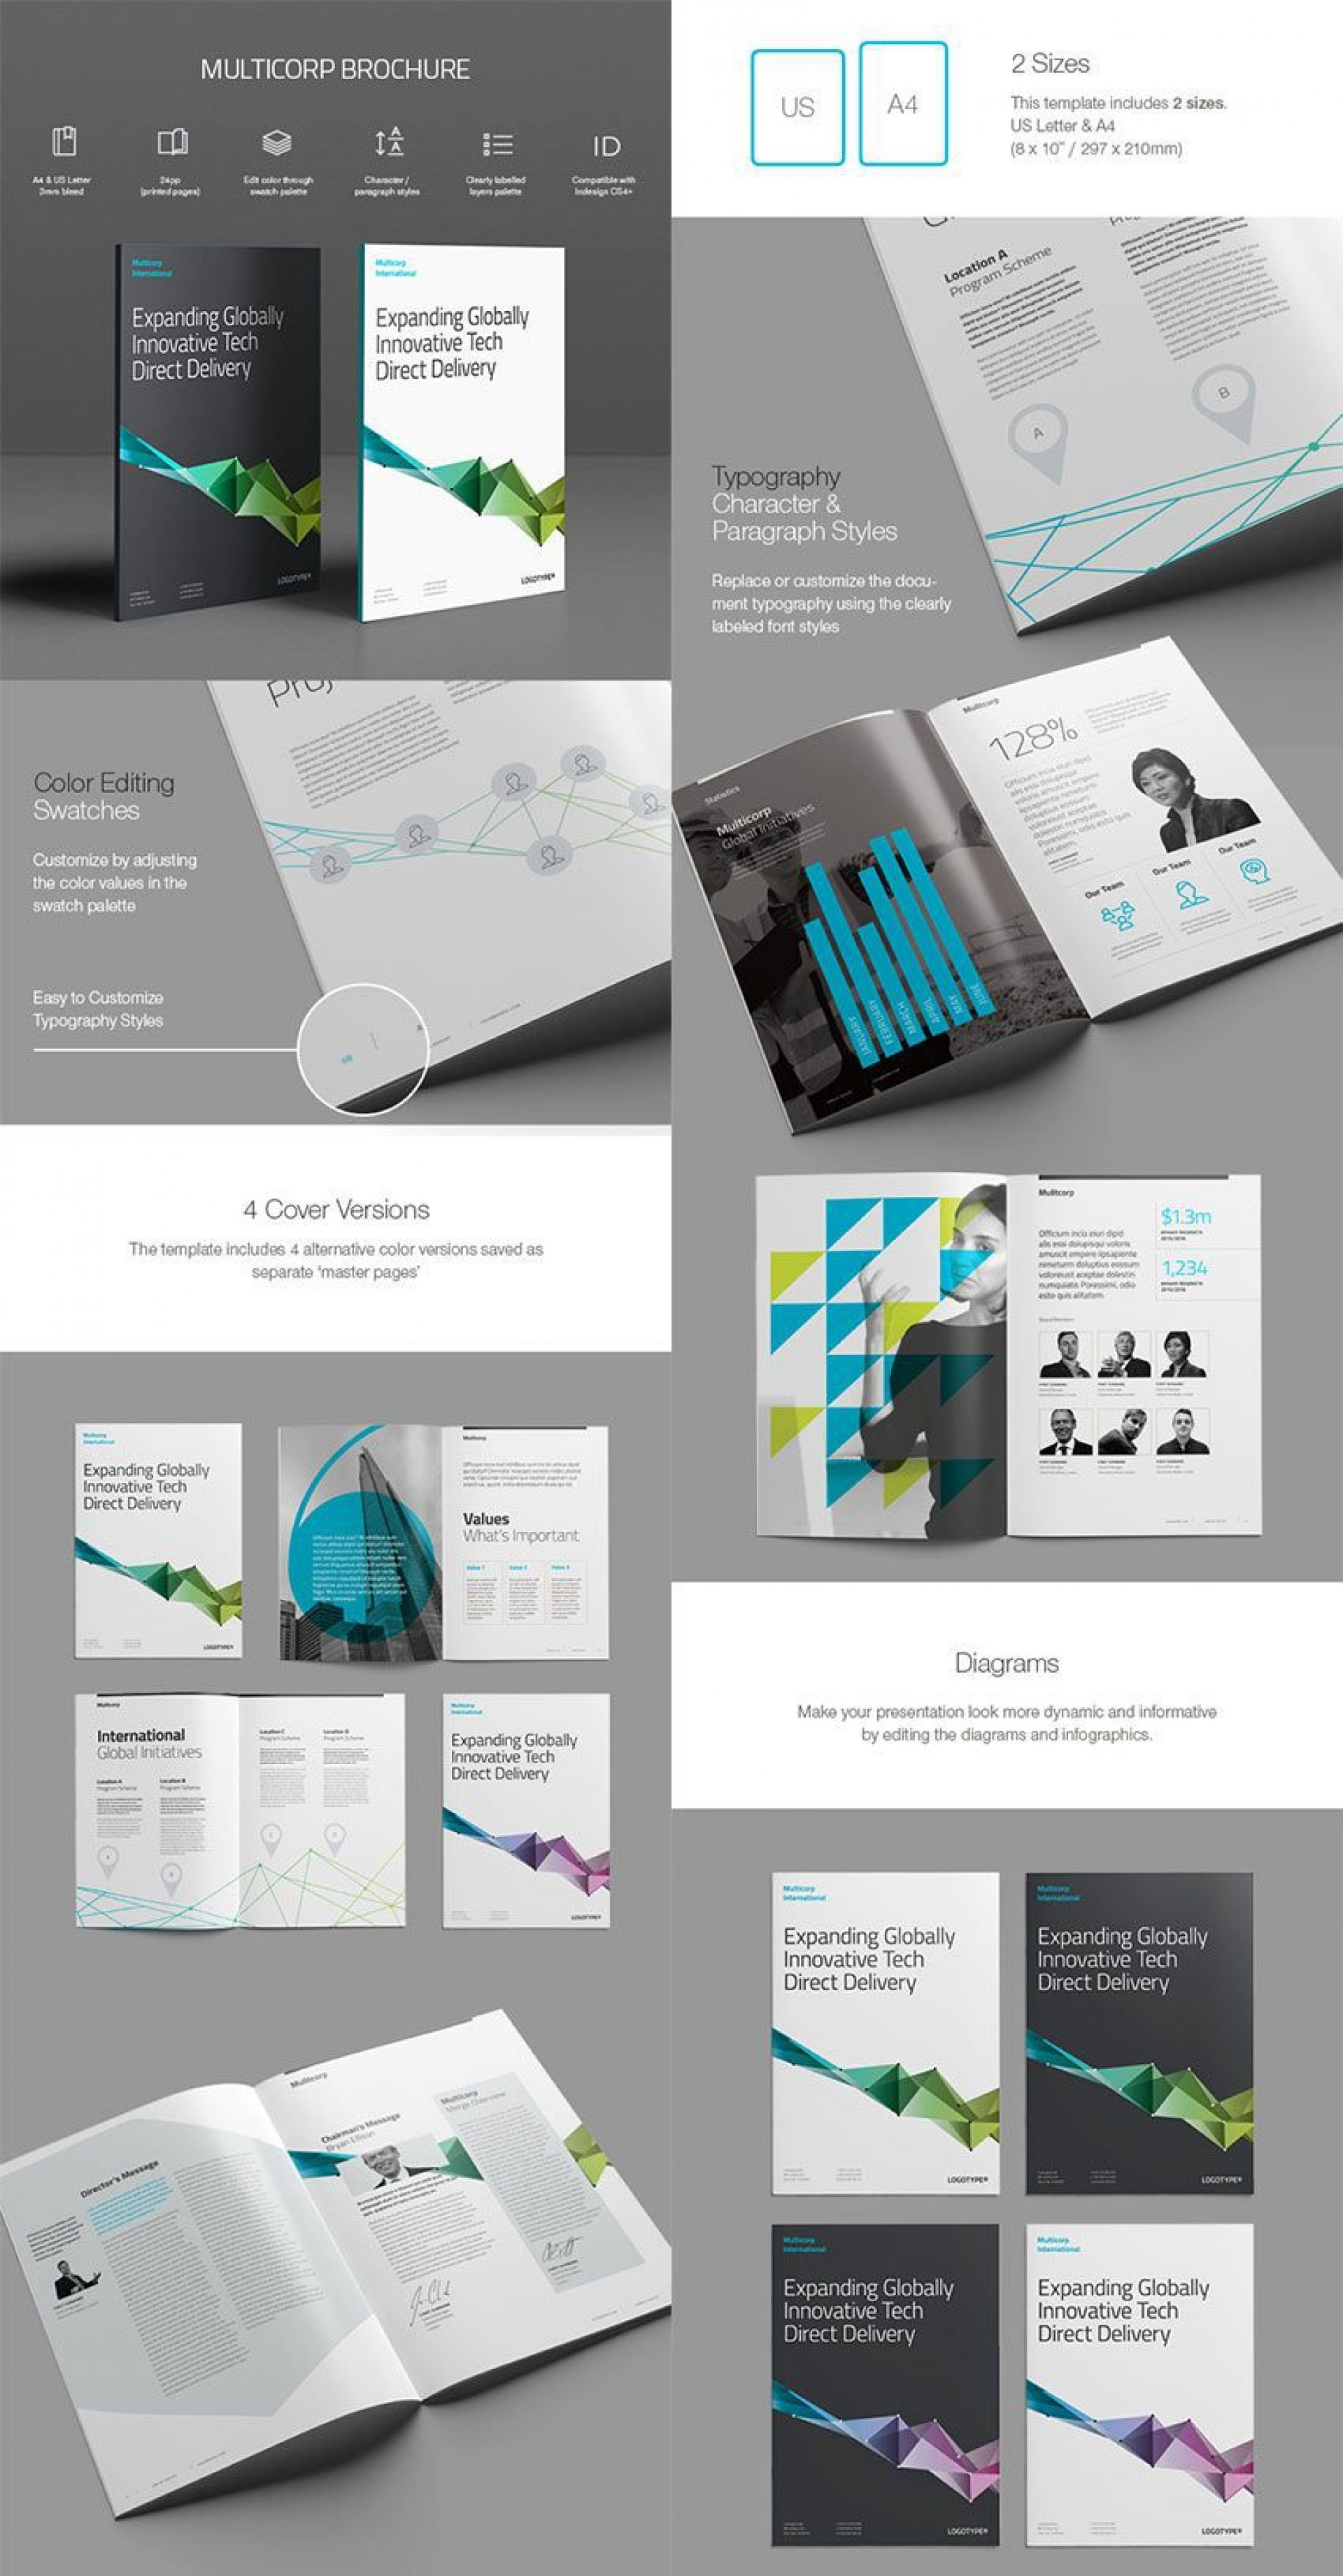 000 Unbelievable Indesign A4 Brochure Template Free Download Highest Clarity 1920